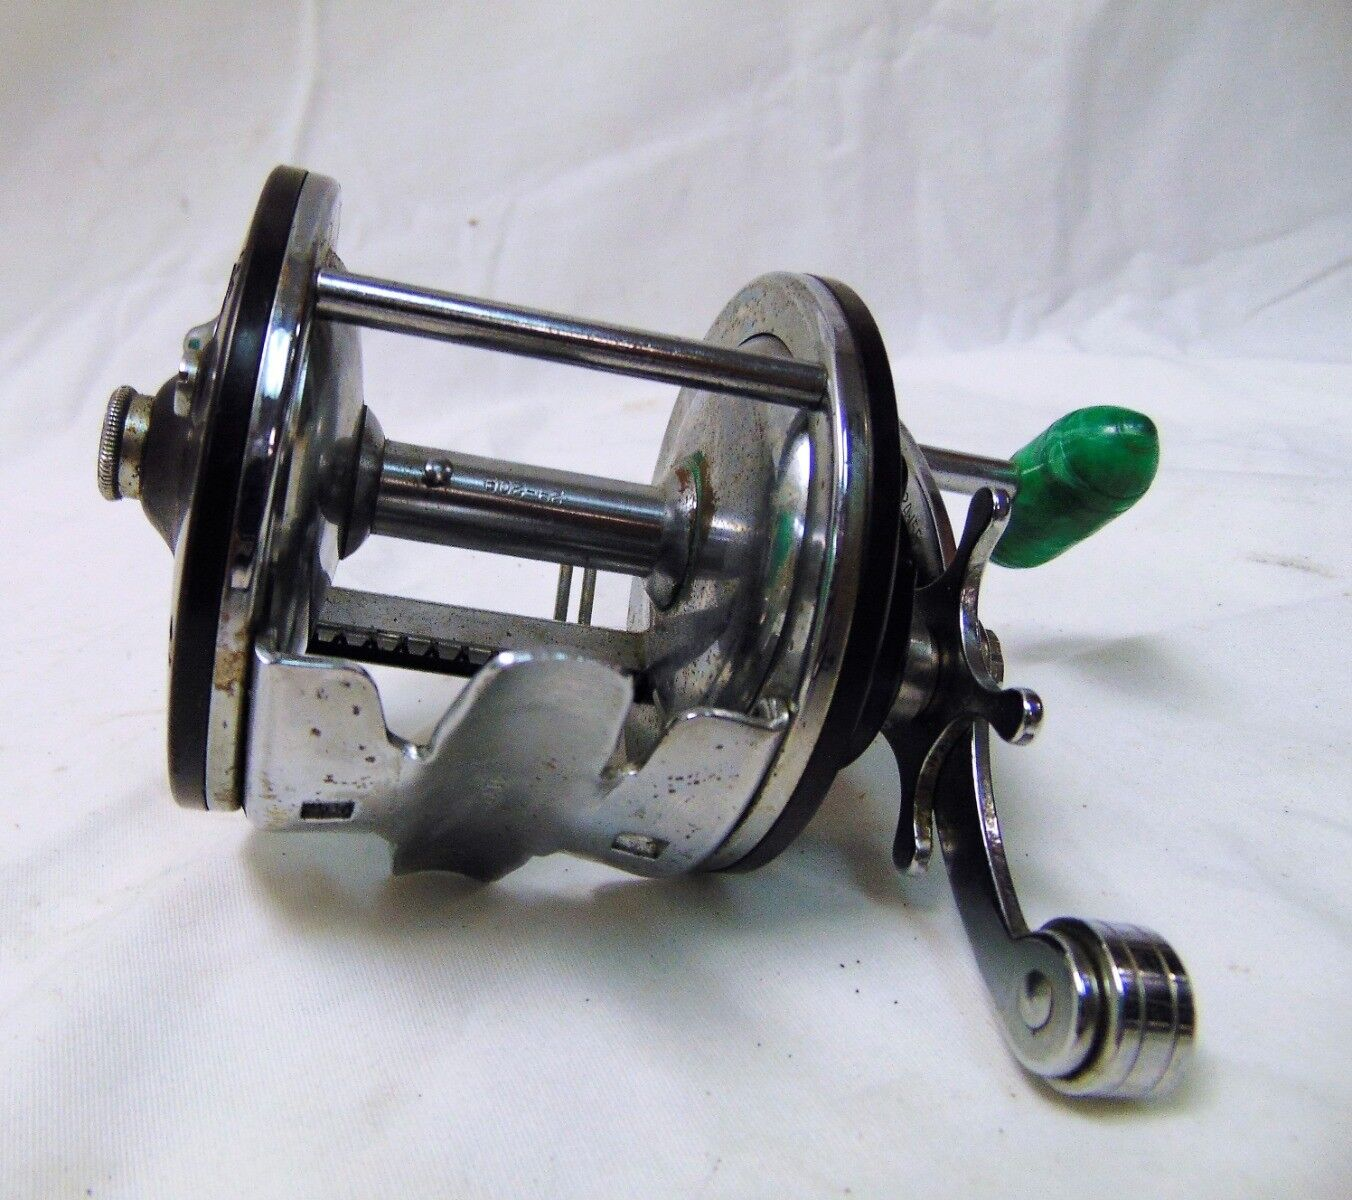 Penn Peer No. 209 Saltwater Baitcasting Reel Burgundy and Jade color